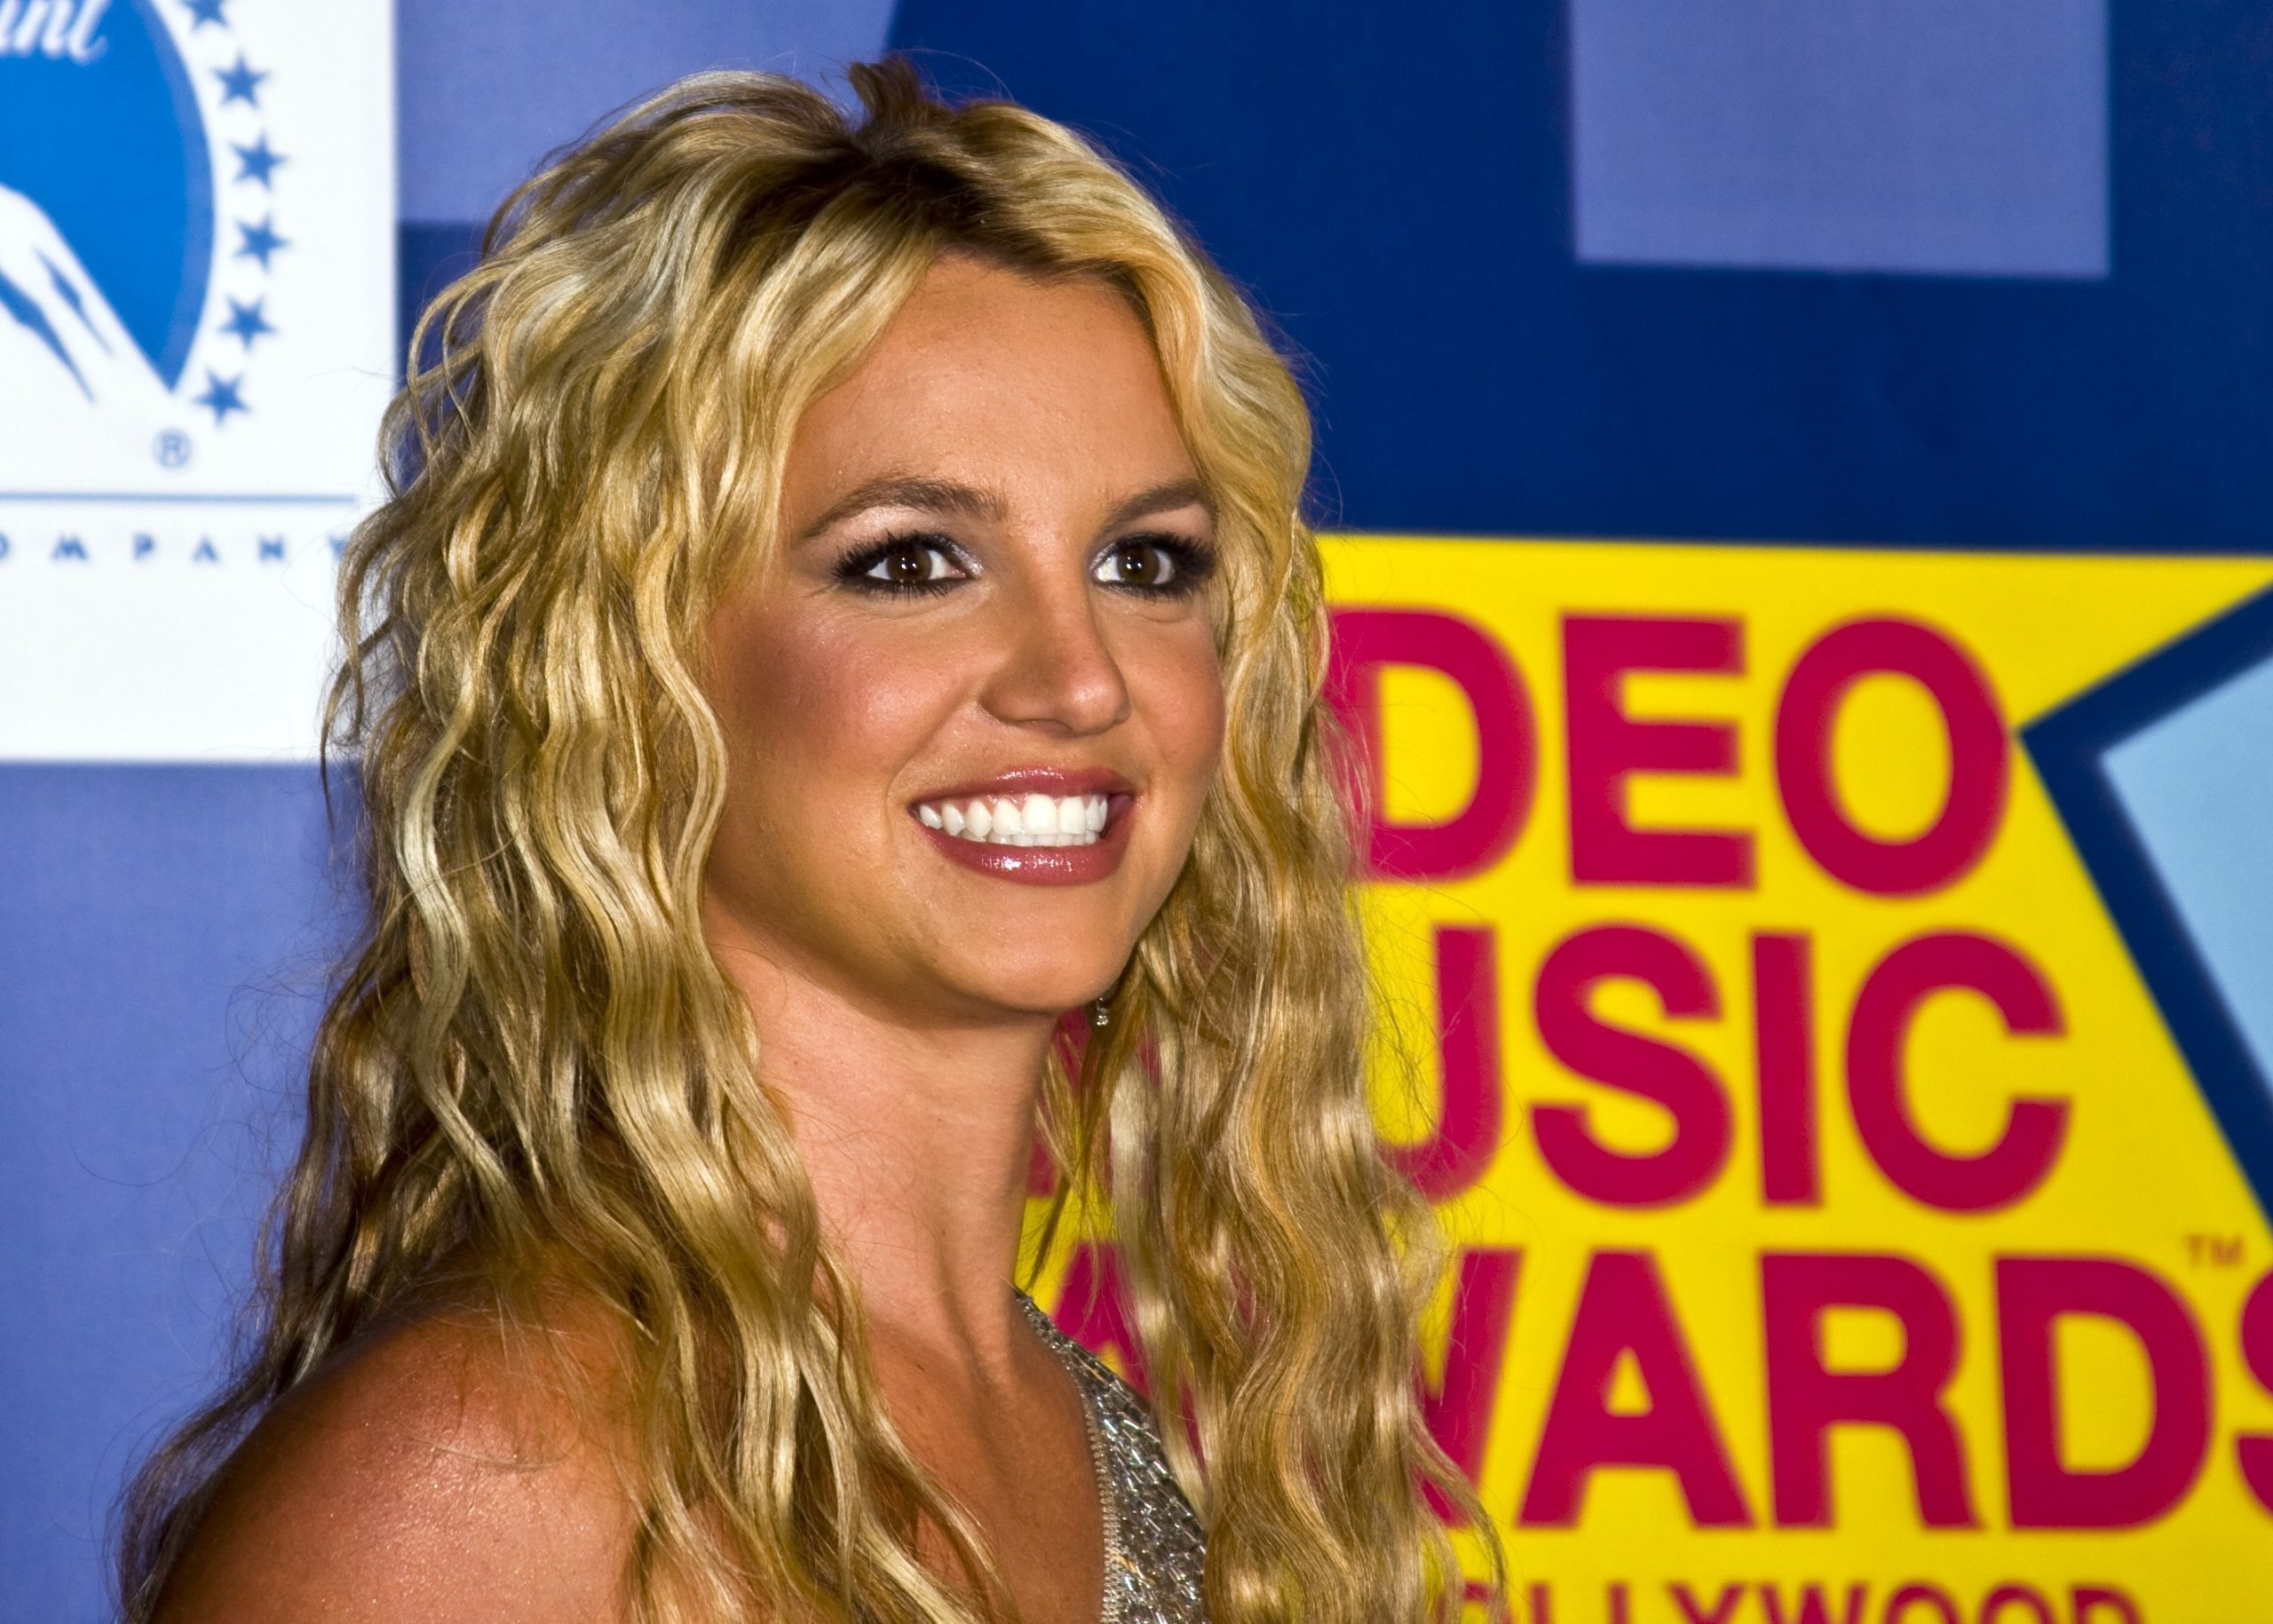 LISTEN: Britney Spears releases new song in honor of her 39th birthday